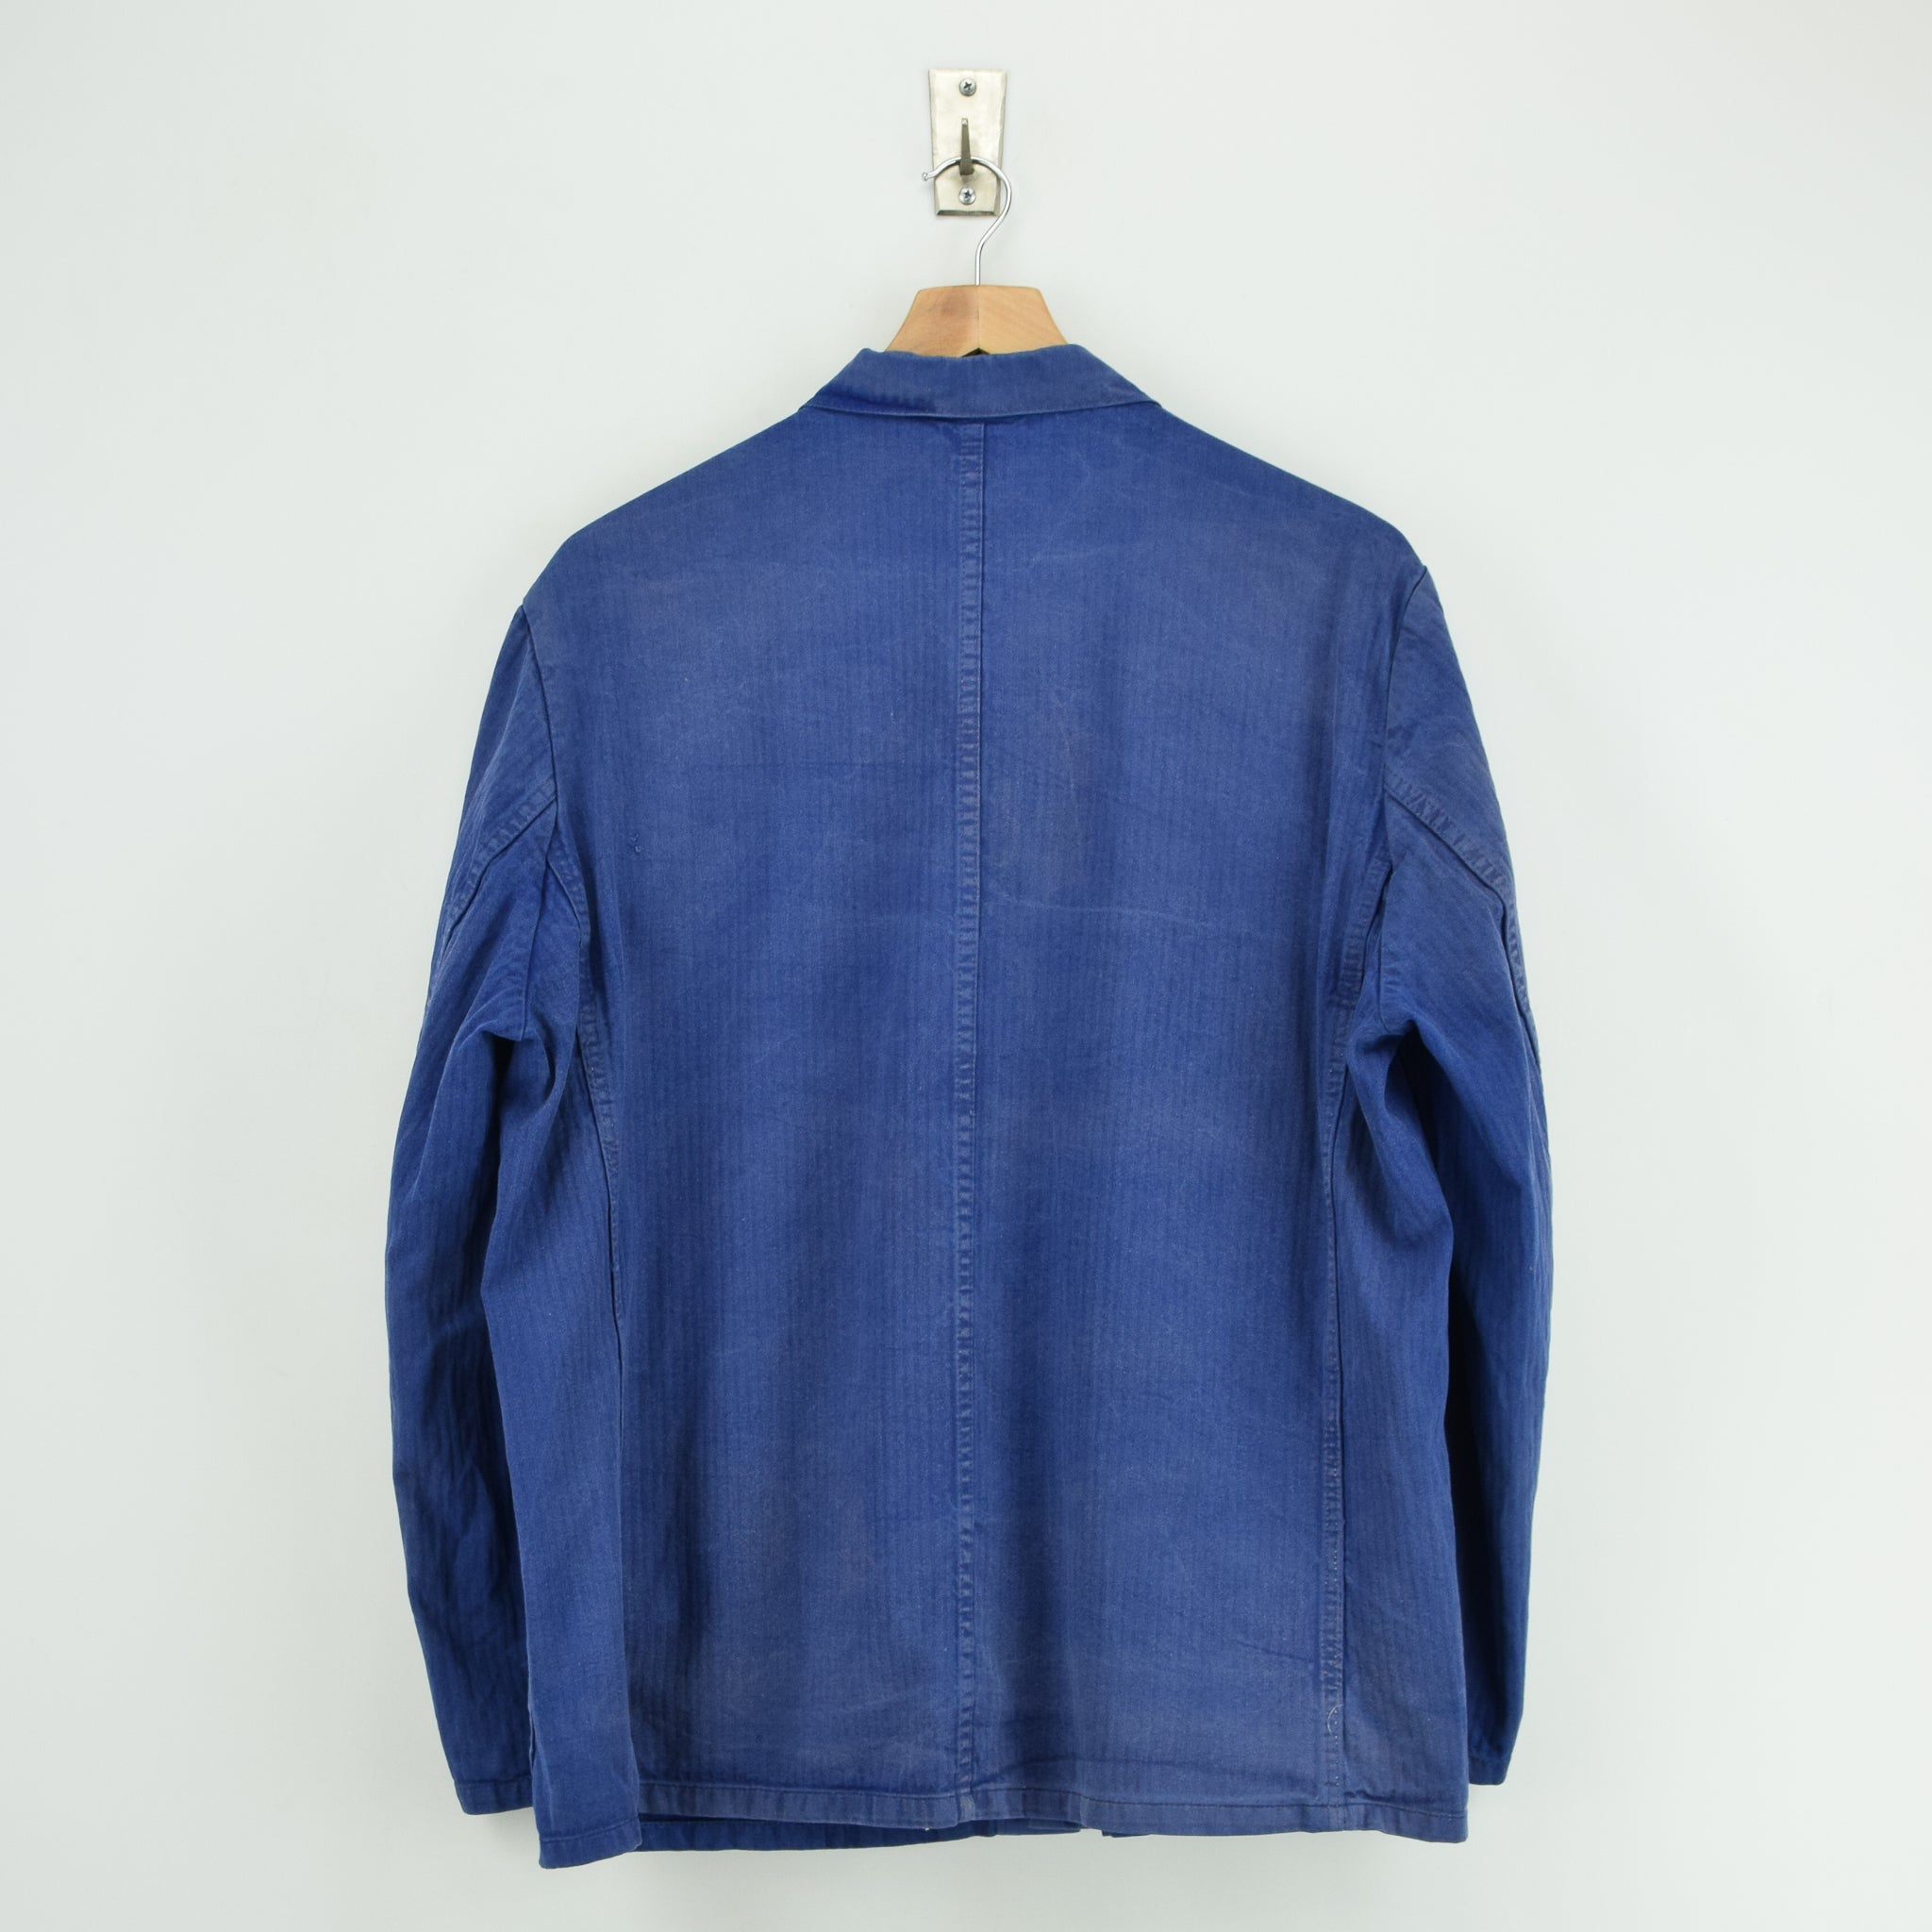 Vintage Distressed Blue French Style Worker Sanforized Cotton Chore Jacket L back